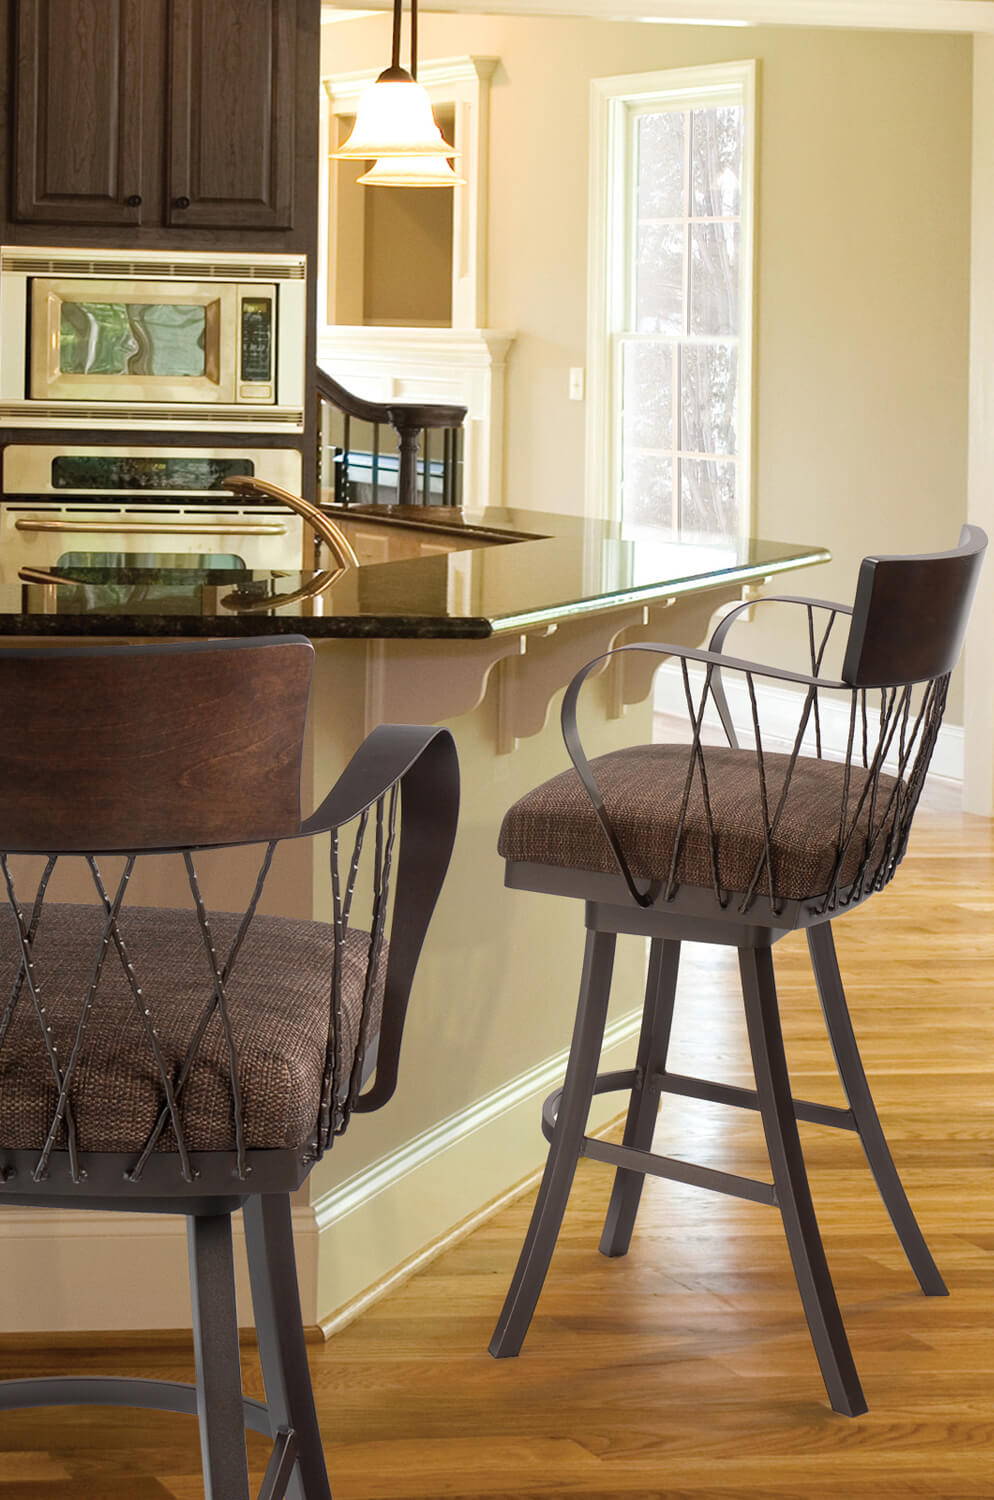 Buy Trica S Bambusa Wide Swivel Bar Stool W Arms Free Shipping